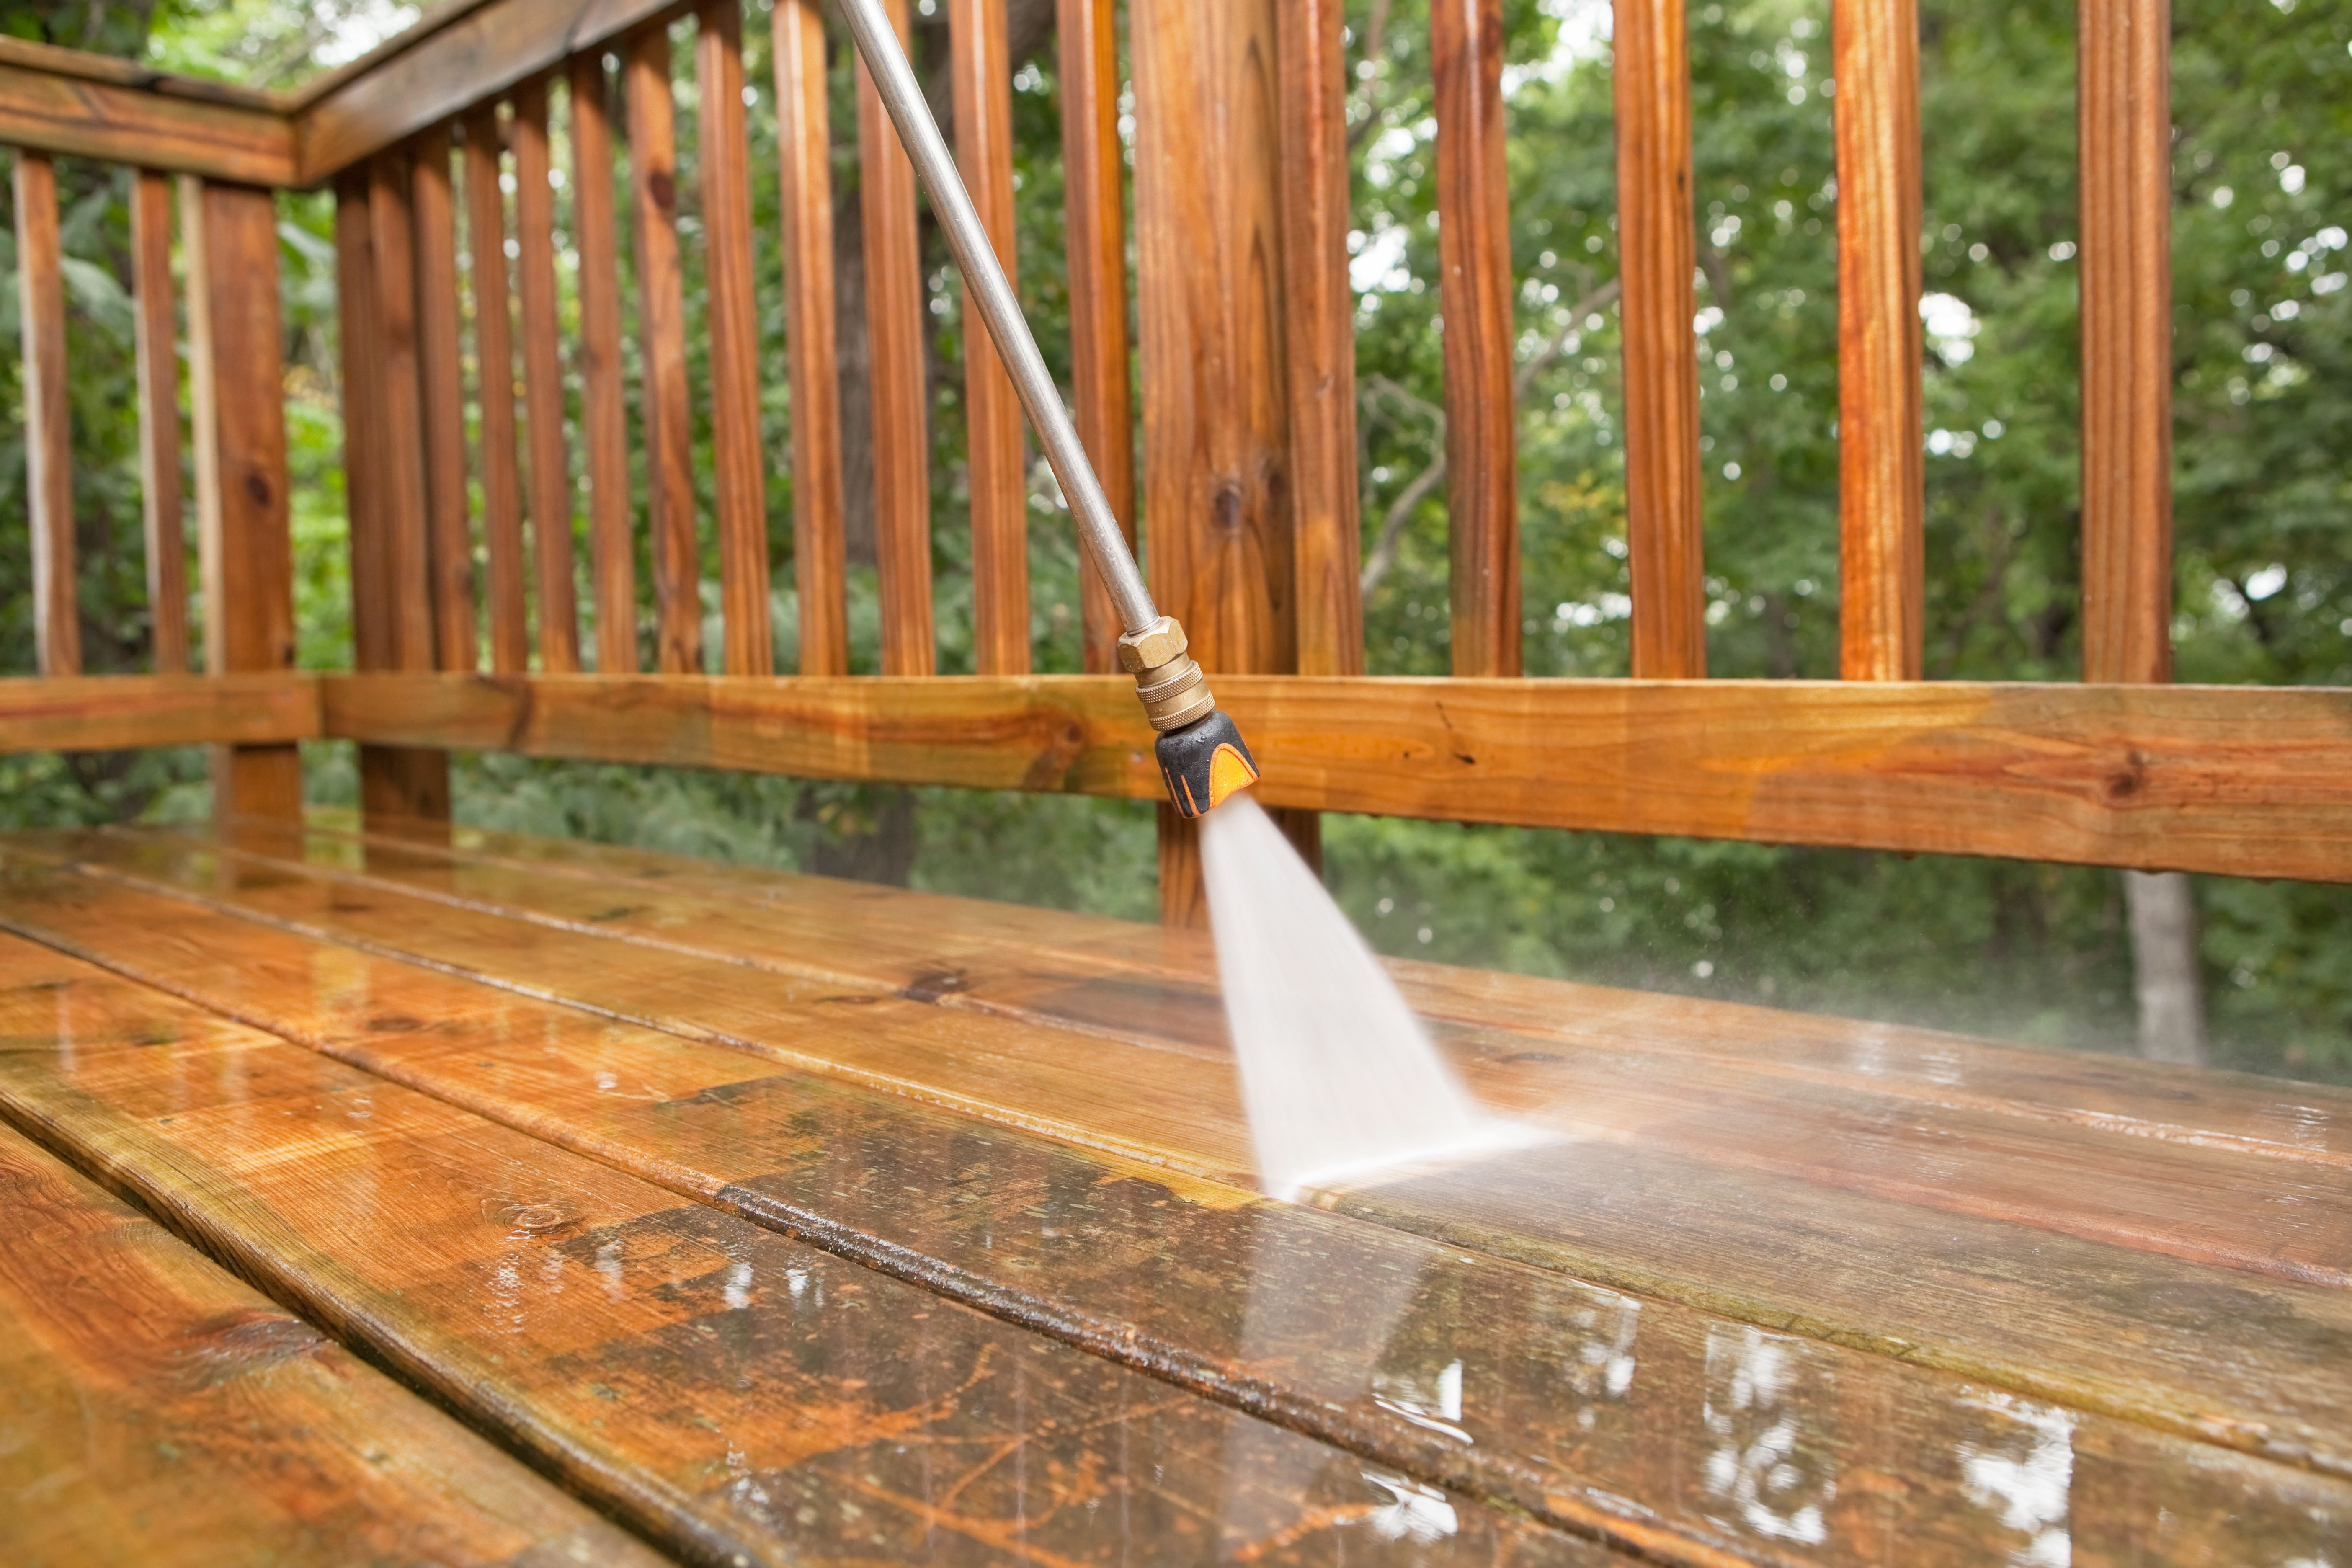 Learn How To Safely And Effectively Pressure Wash Your Wood Deck With A Power Washer Without Damaging The Wood Deck Cleaning Staining Deck Power Washing Deck